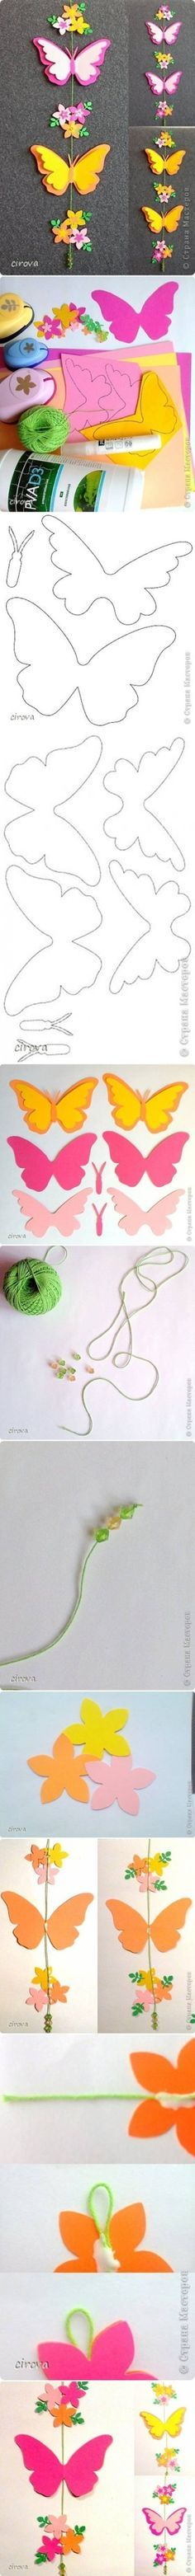 Ideas Origami Papillon Guirlande For 2019 Diy Paper, Paper Crafting, Paper Art, Butterfly Mobile, Butterfly Crafts, Origami Butterfly, Butterfly Ornaments, Butterfly Pendant, Butterfly Wall